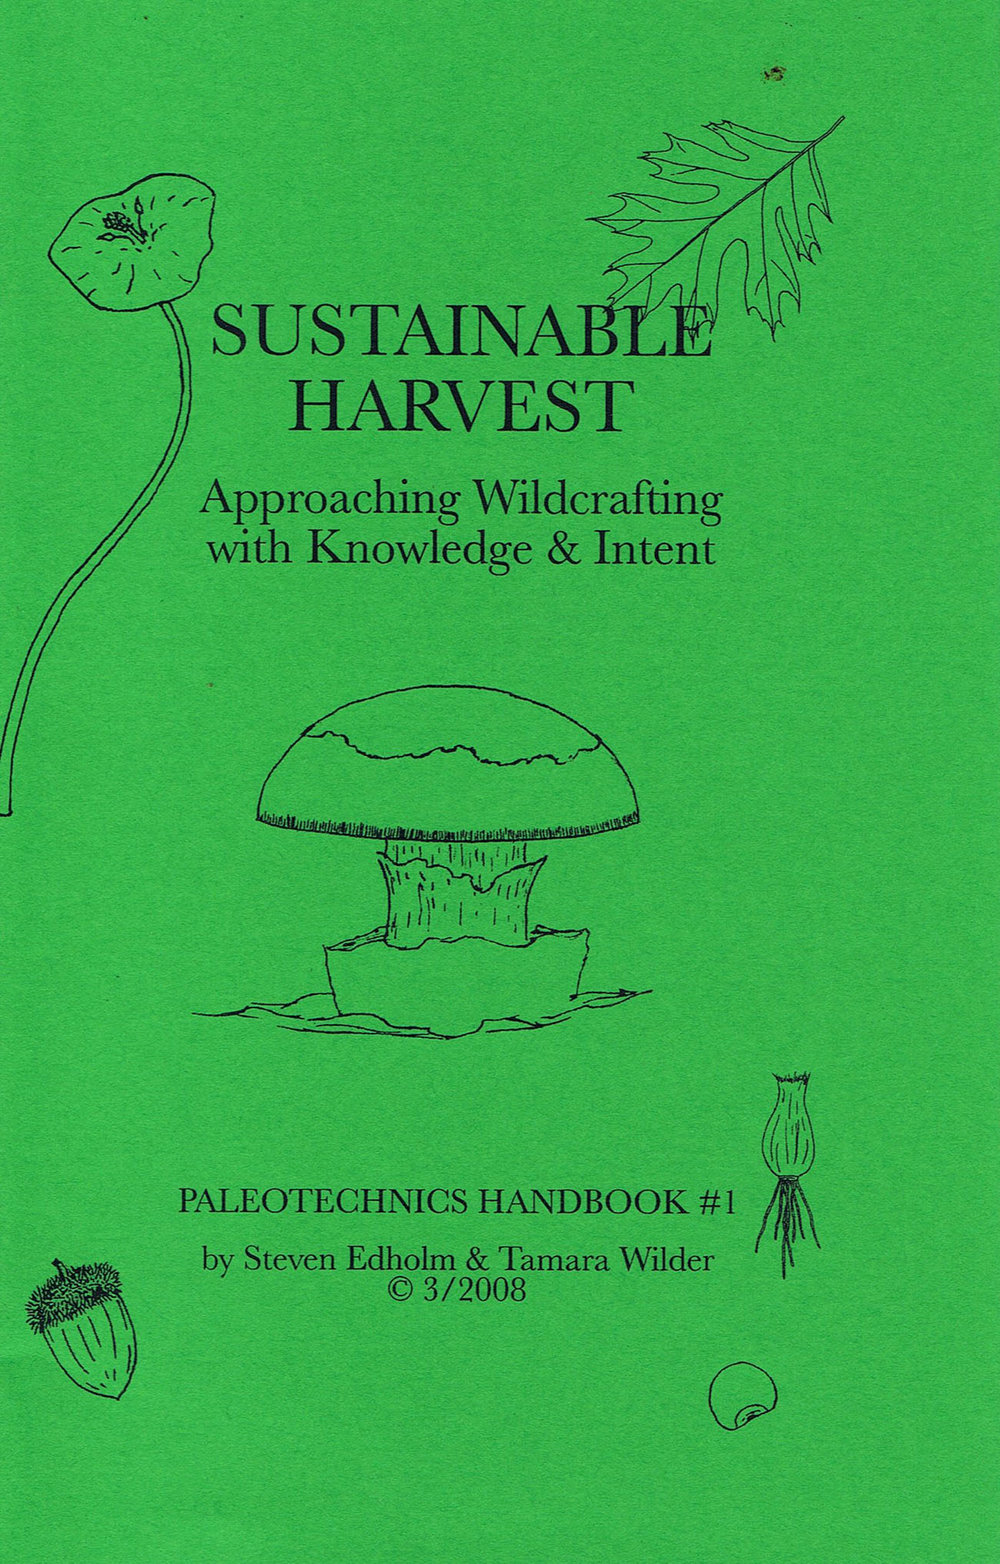 Sustainable Harvest - PDF of our handbook of the same name. Click here to purchase printed handbook.